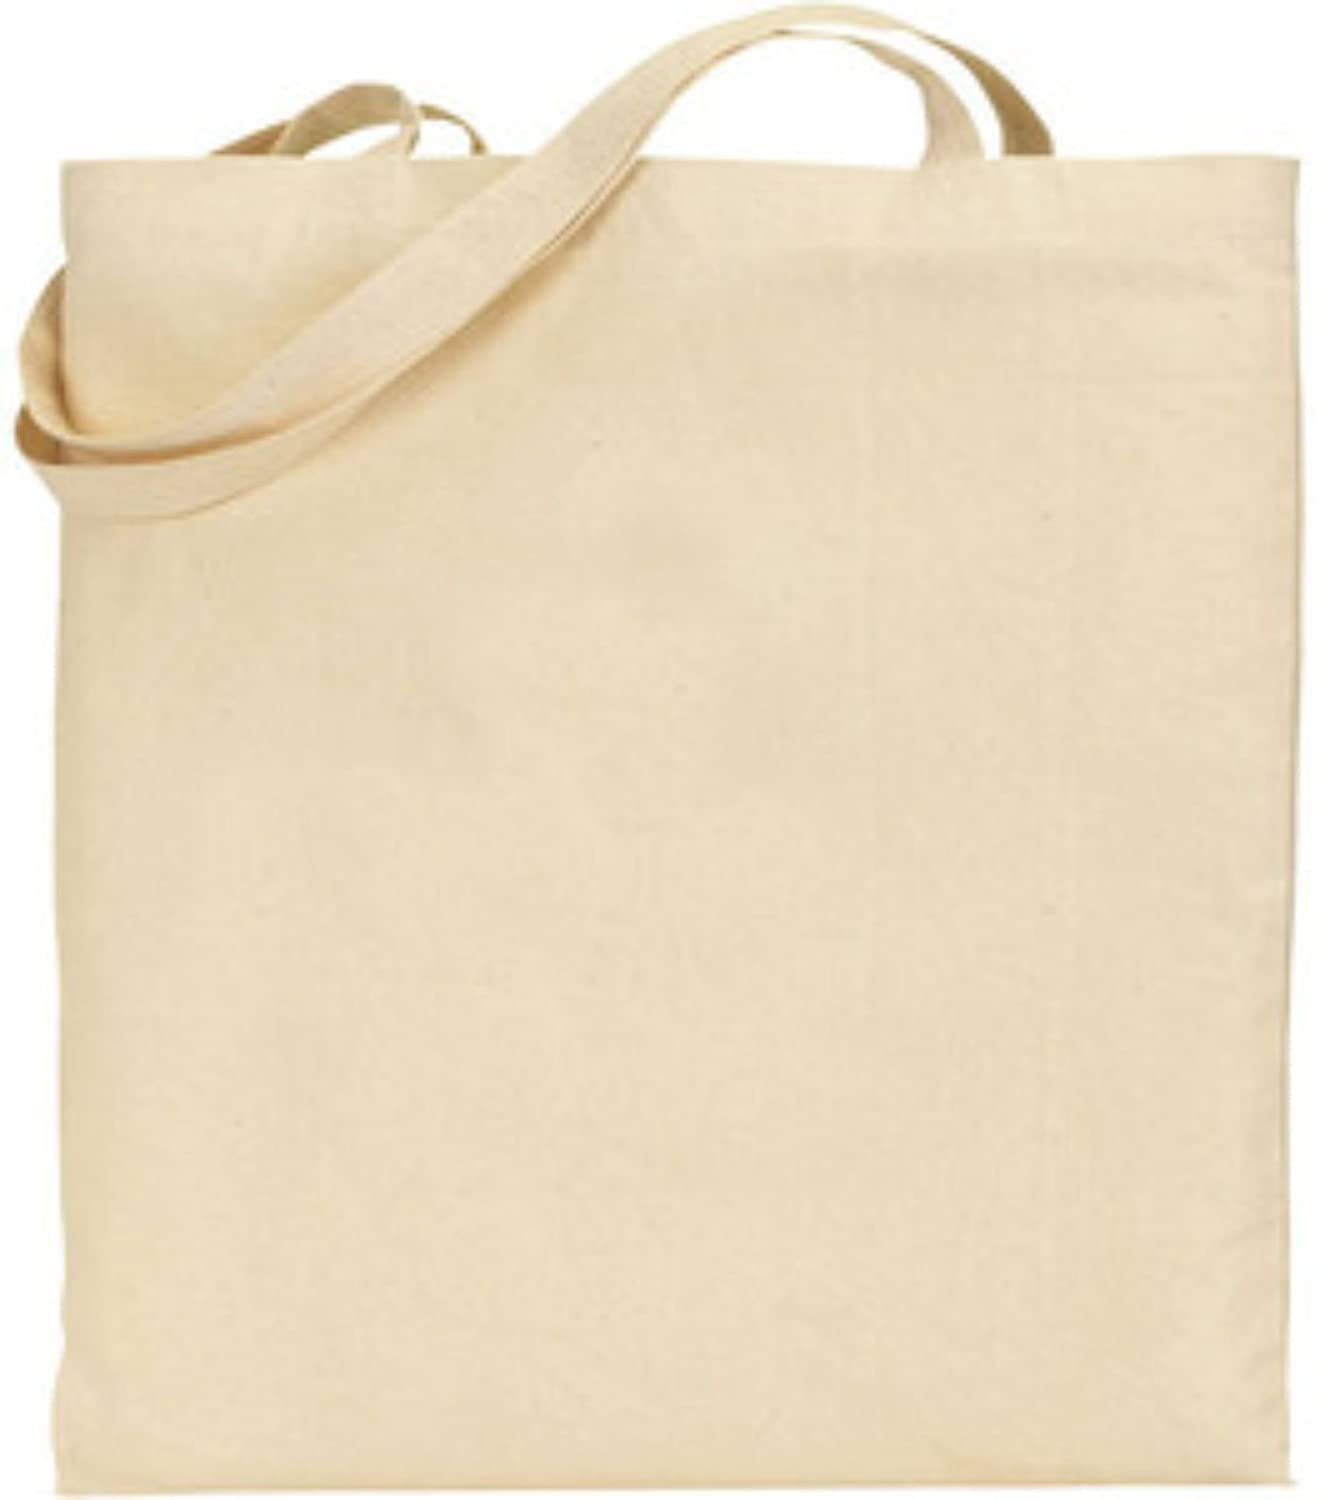 Natural Cotton Tote Bag 145gsm Euro Brand - Plain Ideal Print ...